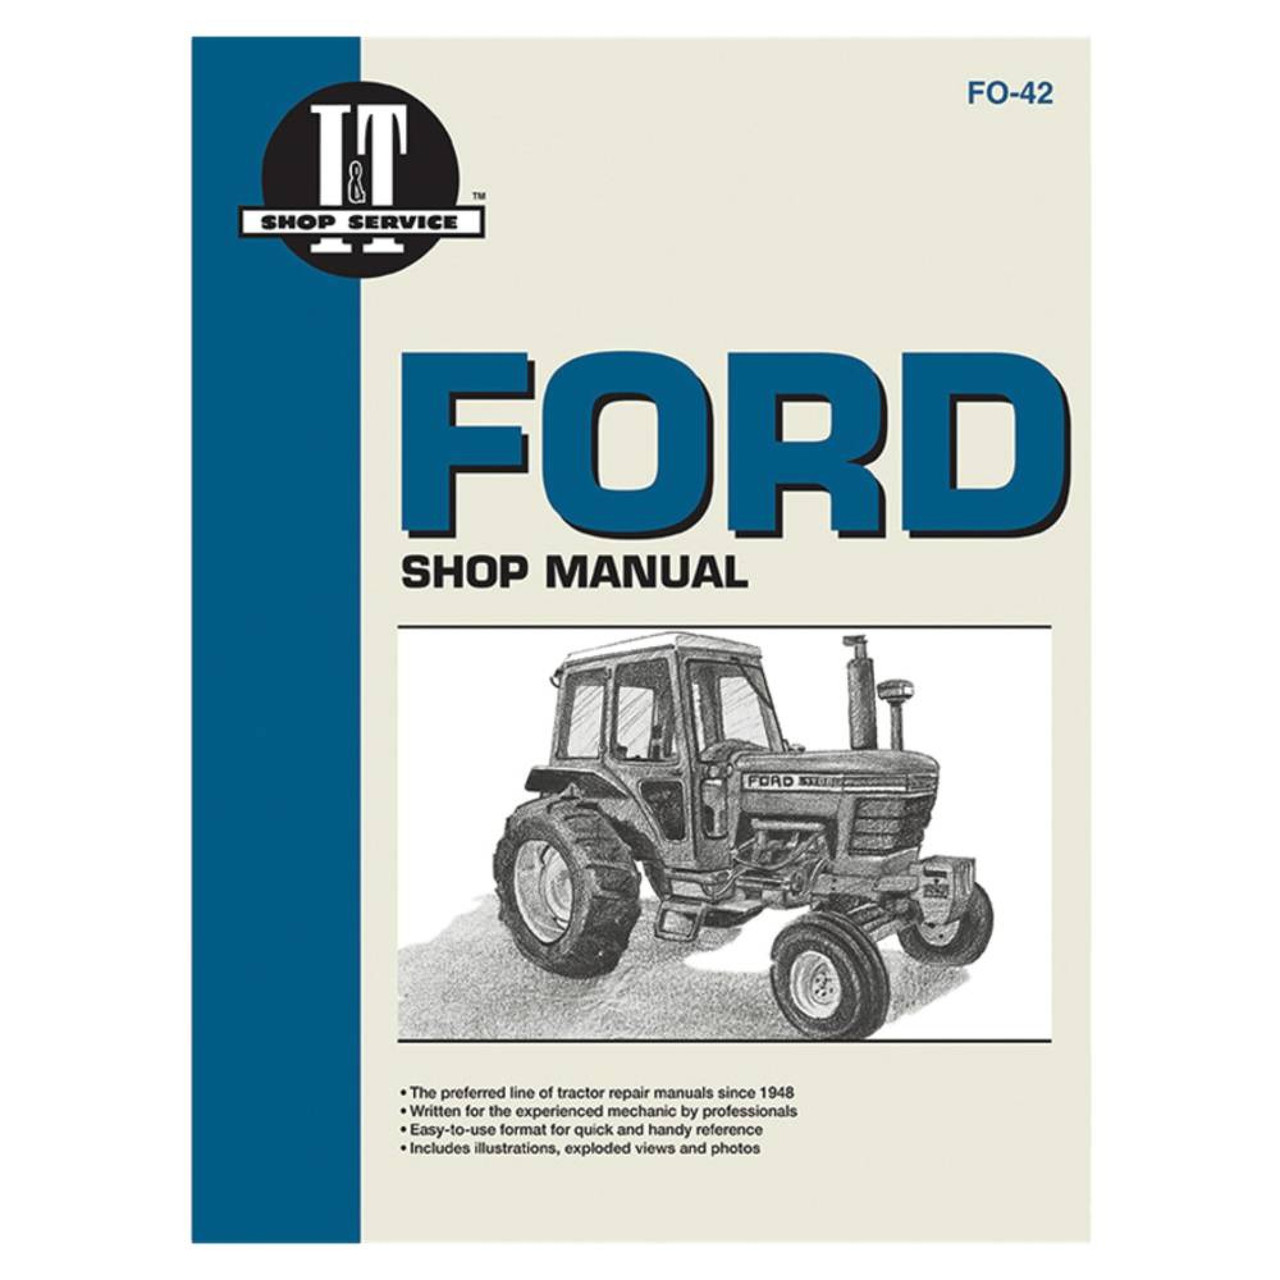 medium resolution of service manual ford new holland tractor fo 42 5100 5200 5600 5610d3d71ba2asa5oz cloudfront